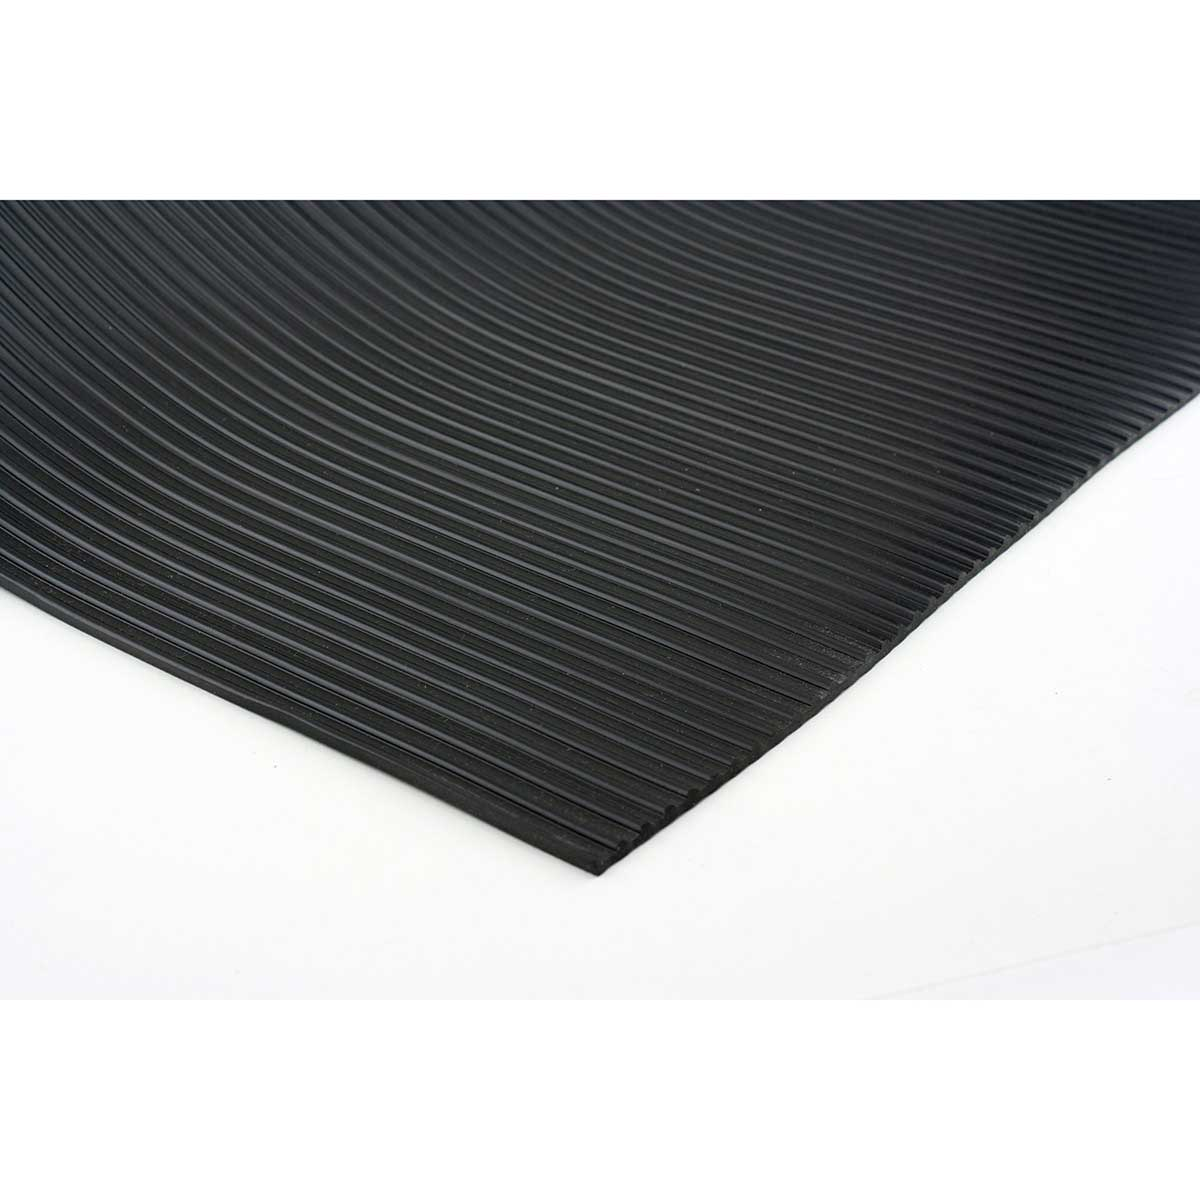 Ranco Table Mat Black for Grooming Tables